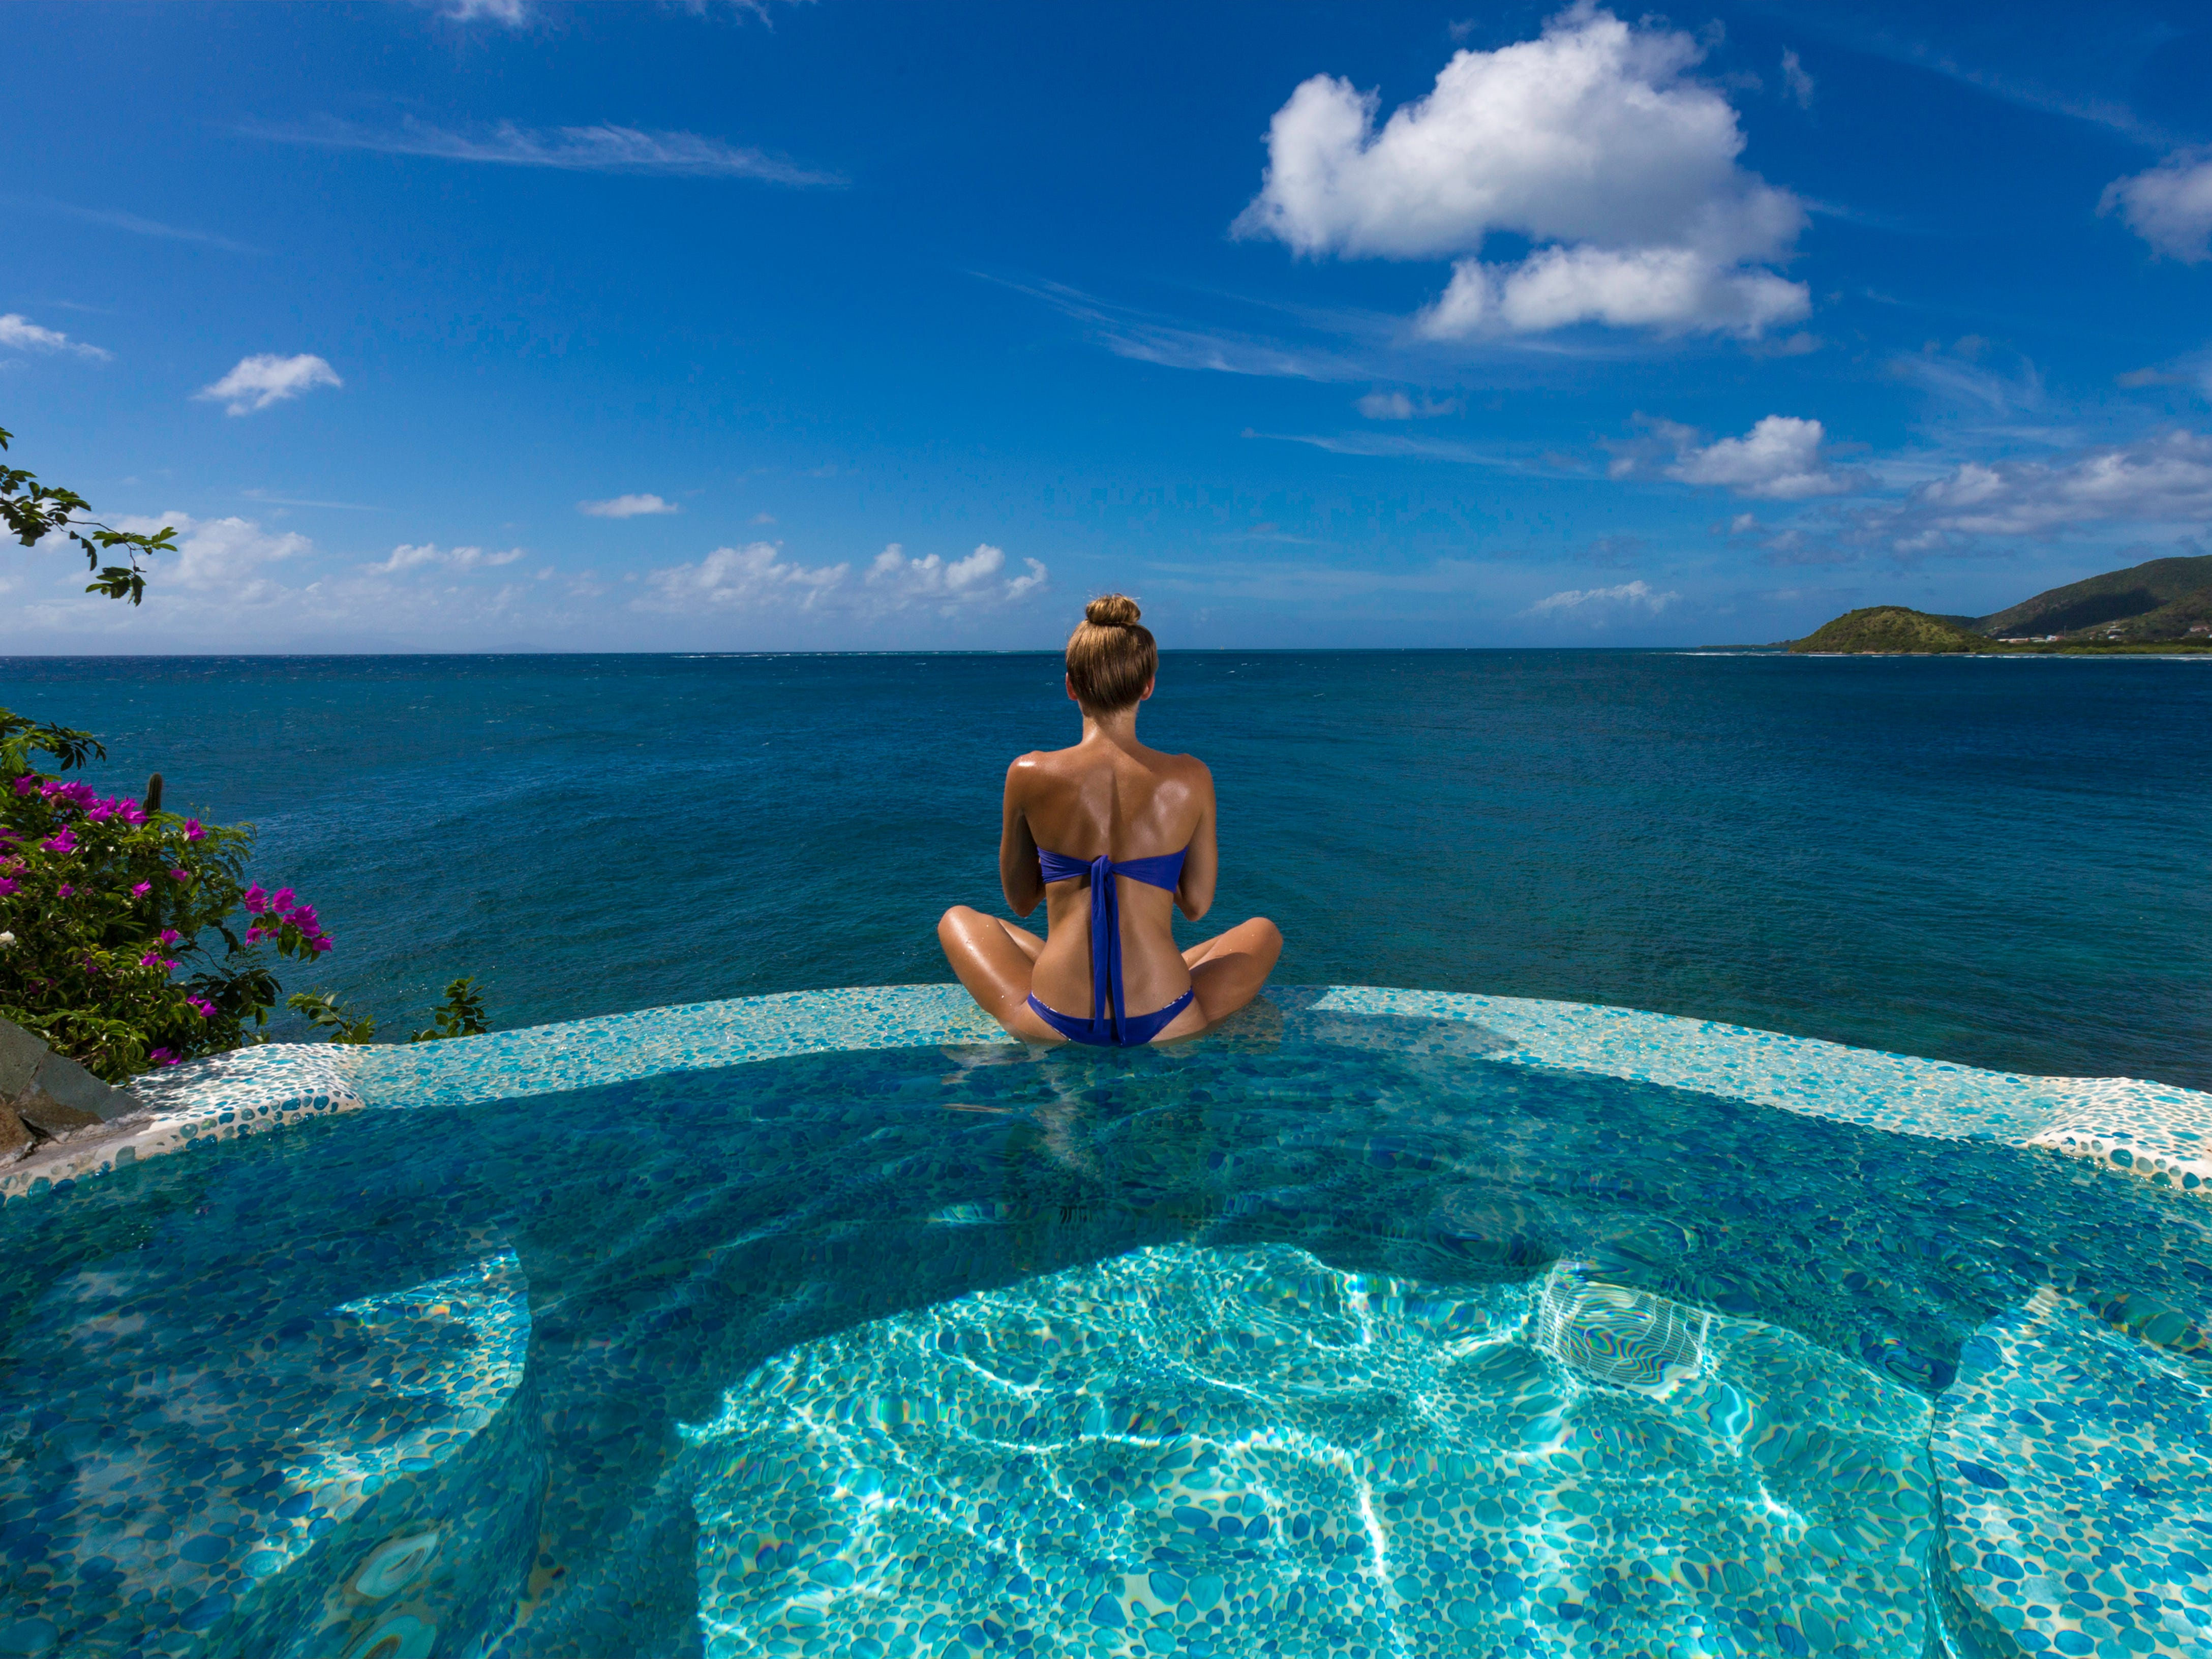 The Jacuzzi at The Spa at the Curtain Bluff Resort in Antigua is big enough to be a pool.